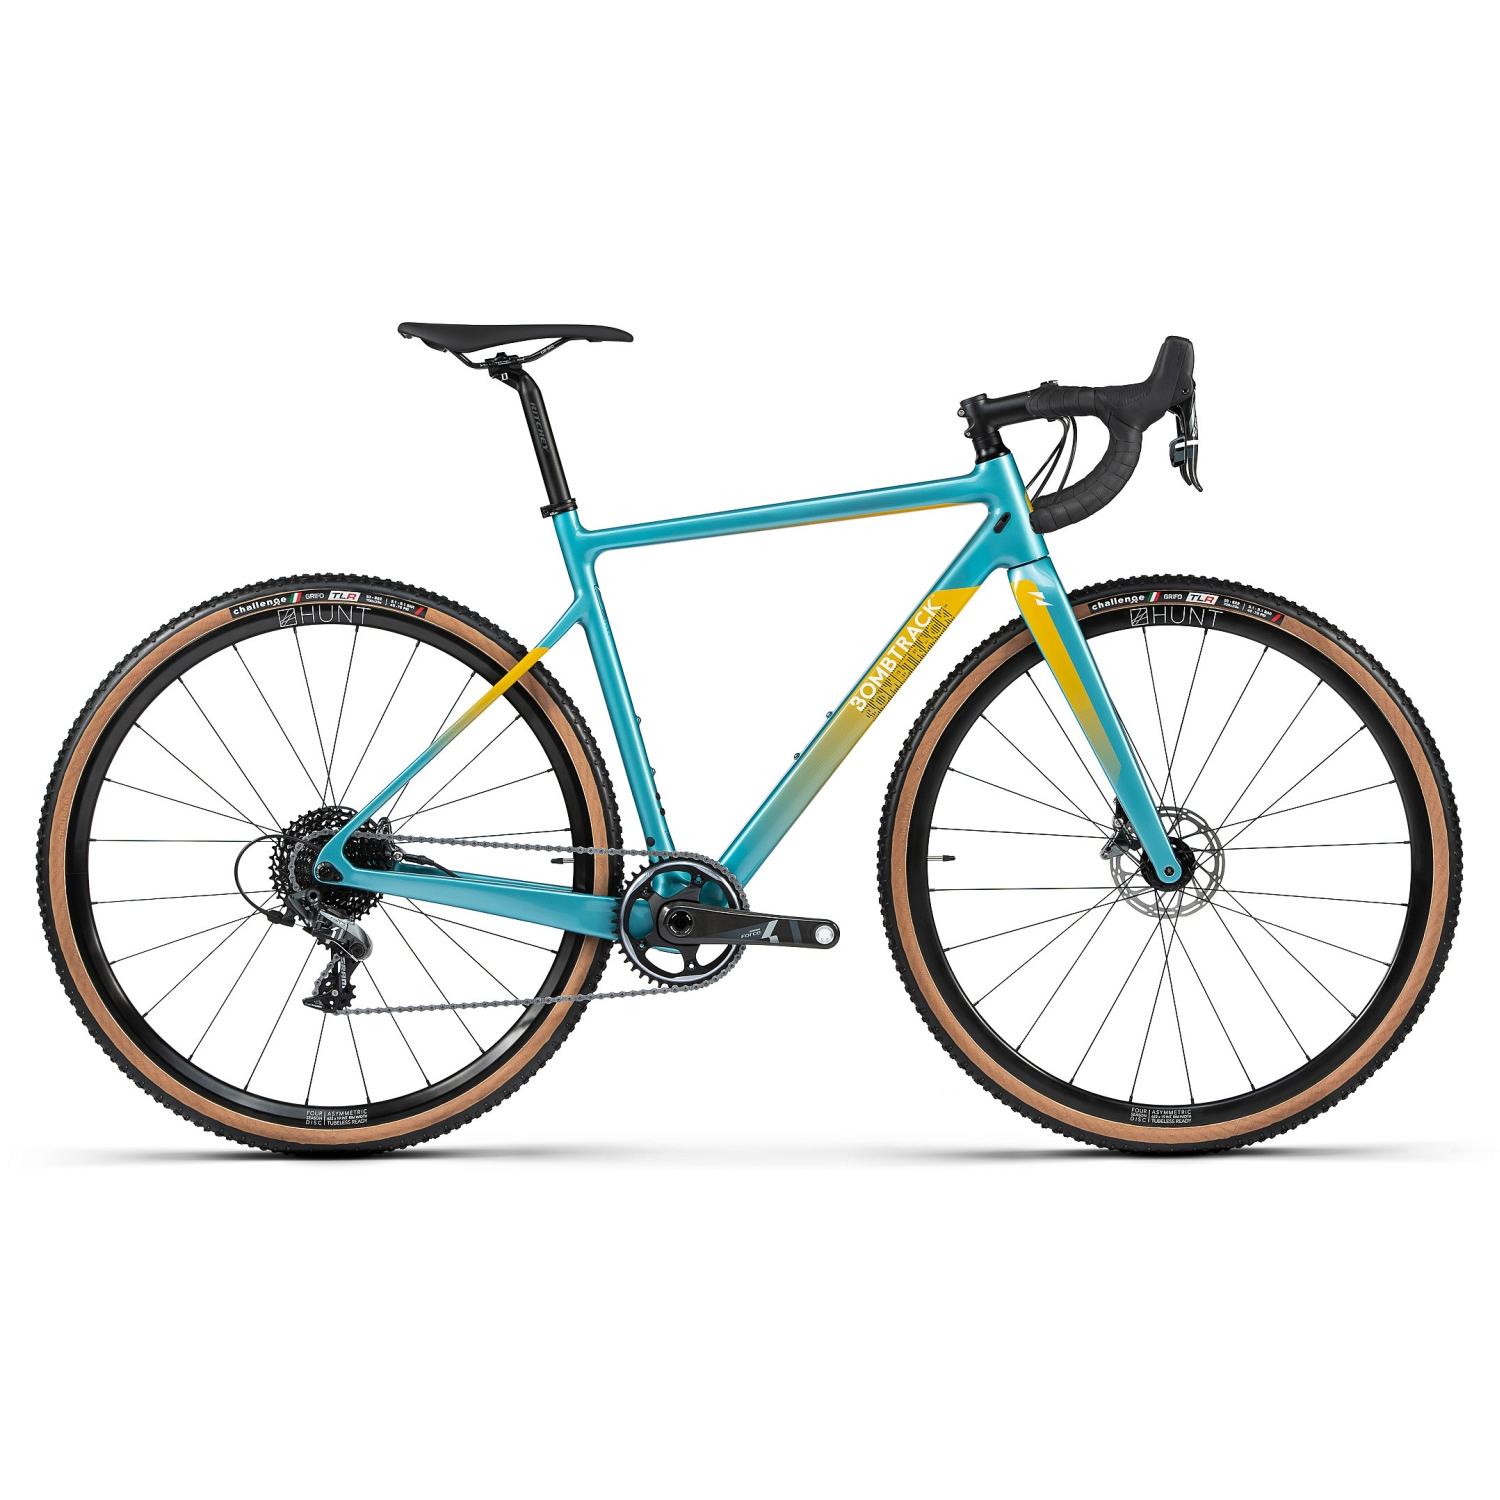 Bombtrack Tension C - Carbon Cyclocross Bike - 2021 - glossy turquoise